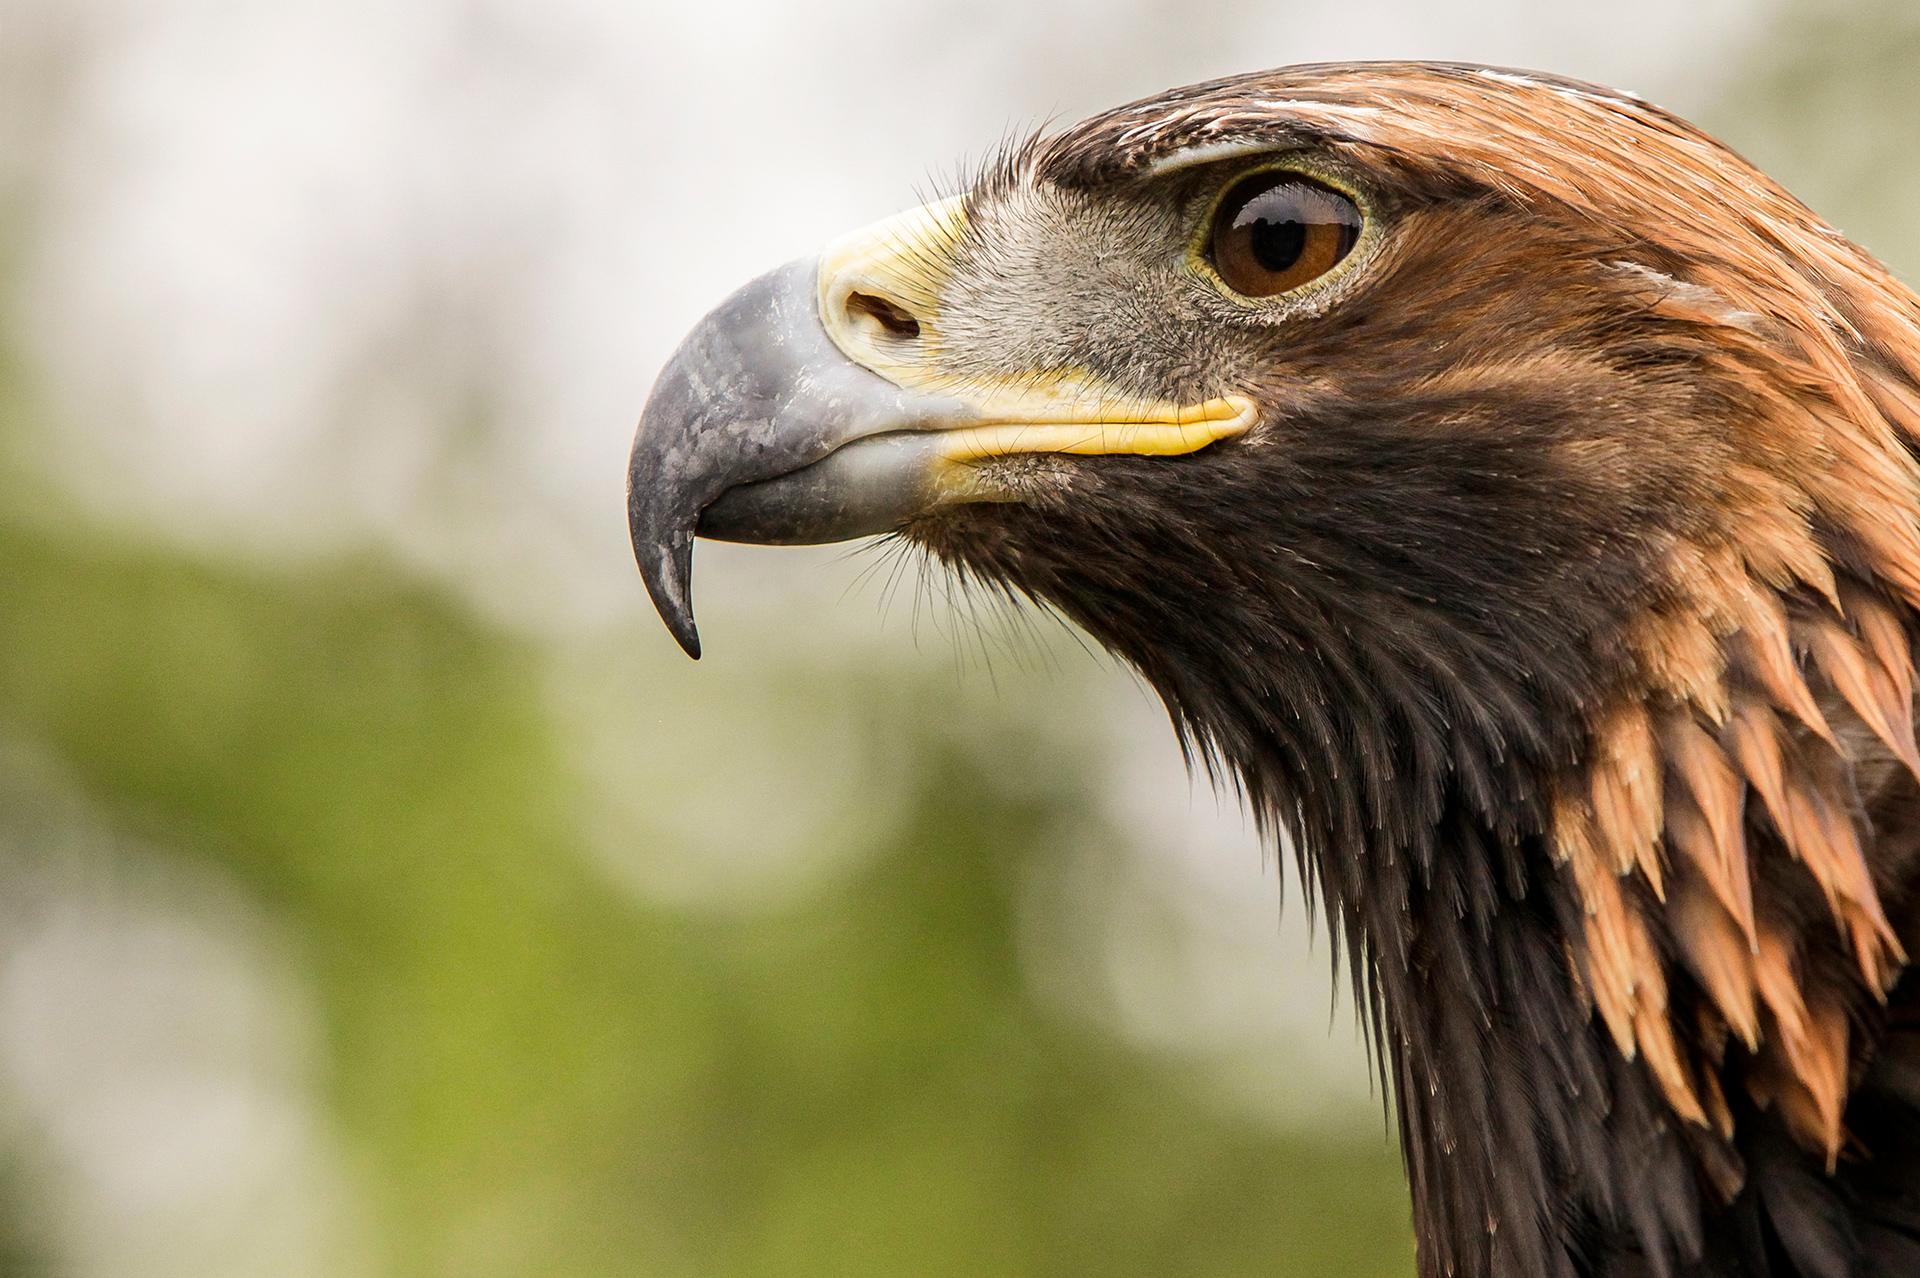 Golden Eagle, Turgen, eagle, closeup